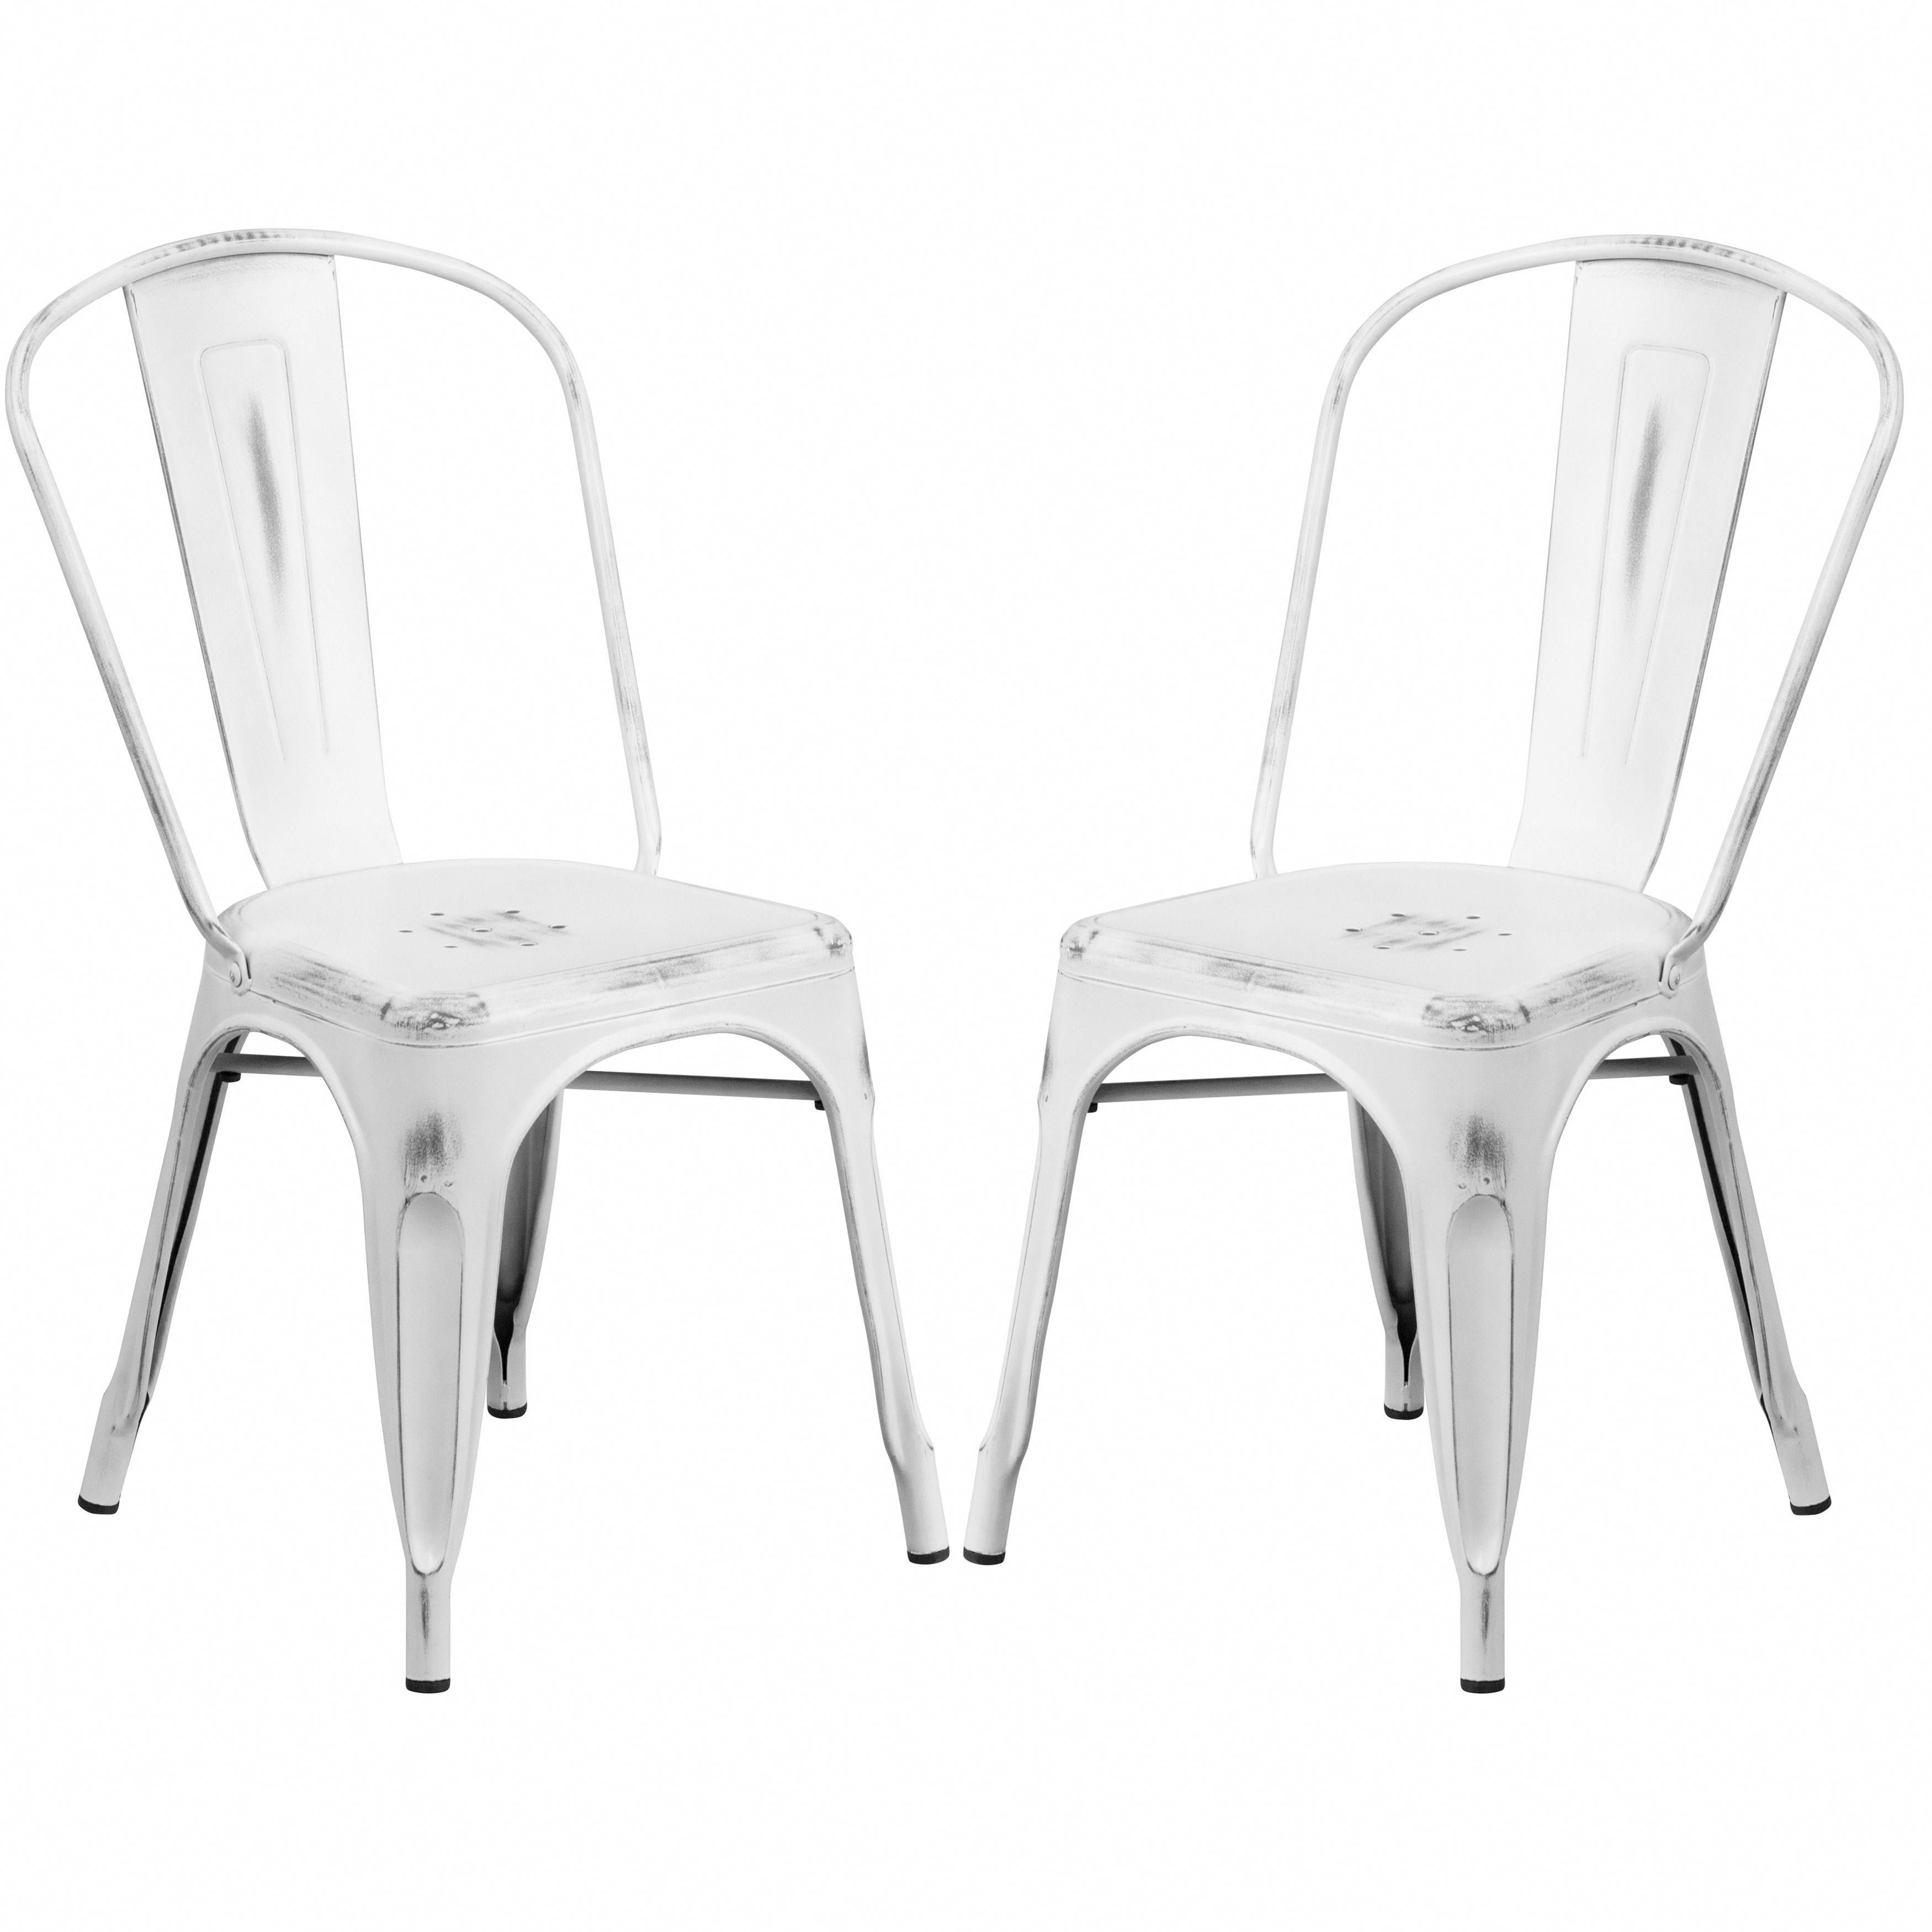 White distressed metal bistro style chair 4 chairs patio furniture metalpatiochairs